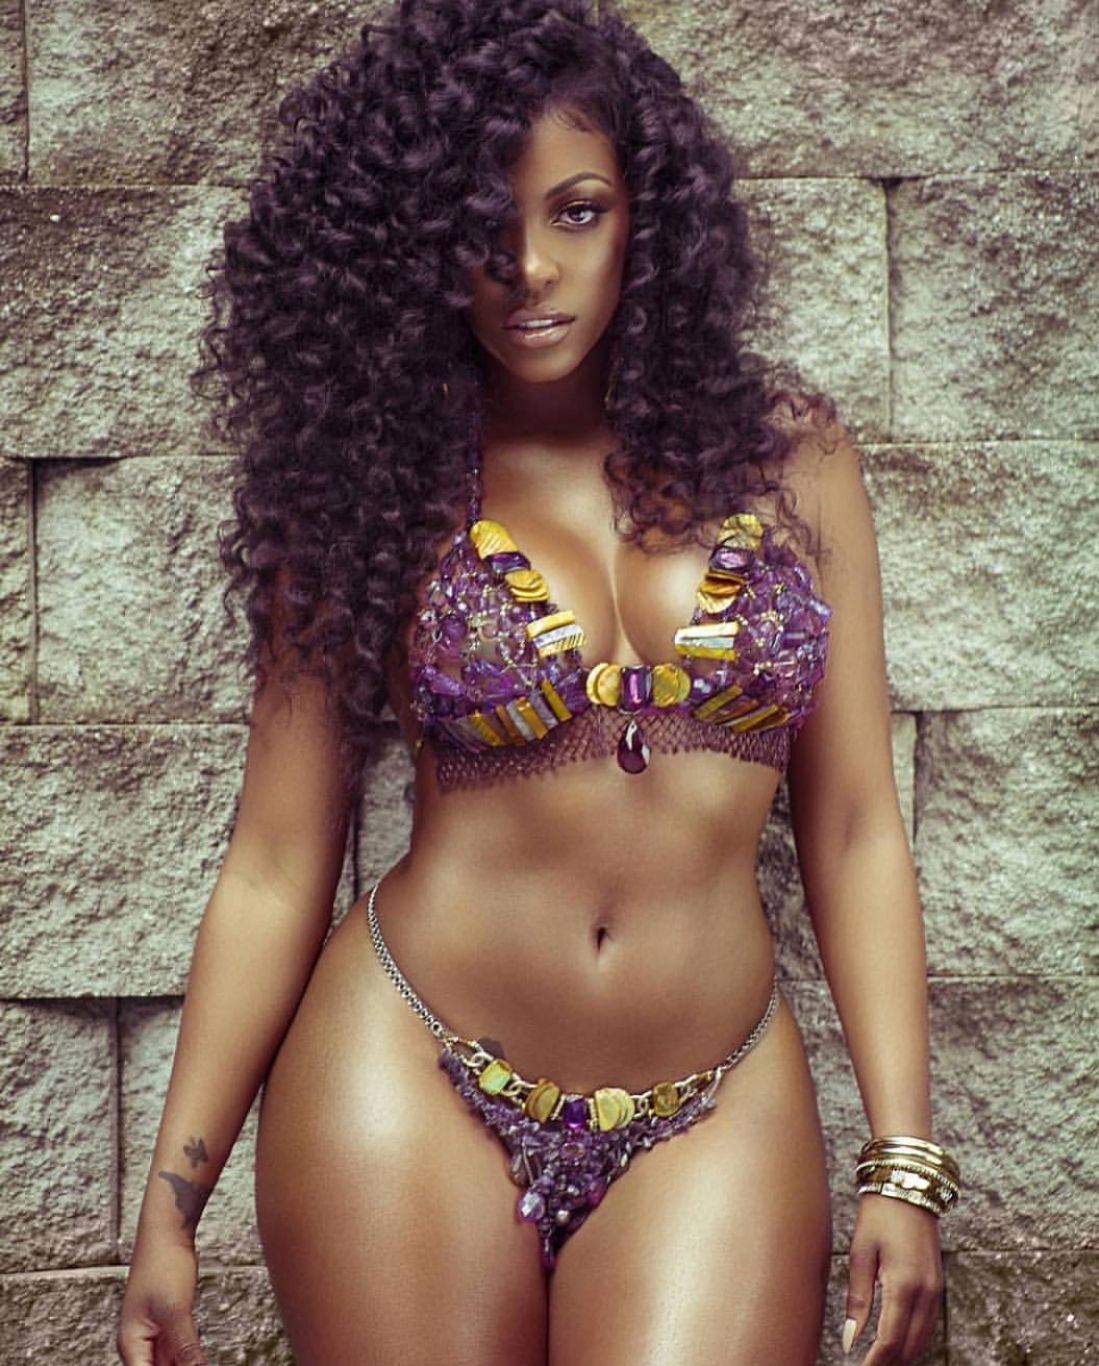 f0982bf3e2f89 Porsha Williams Beautiful Body, Beautiful People, Beautiful Black Women,  Beautiful Curves, Beautiful